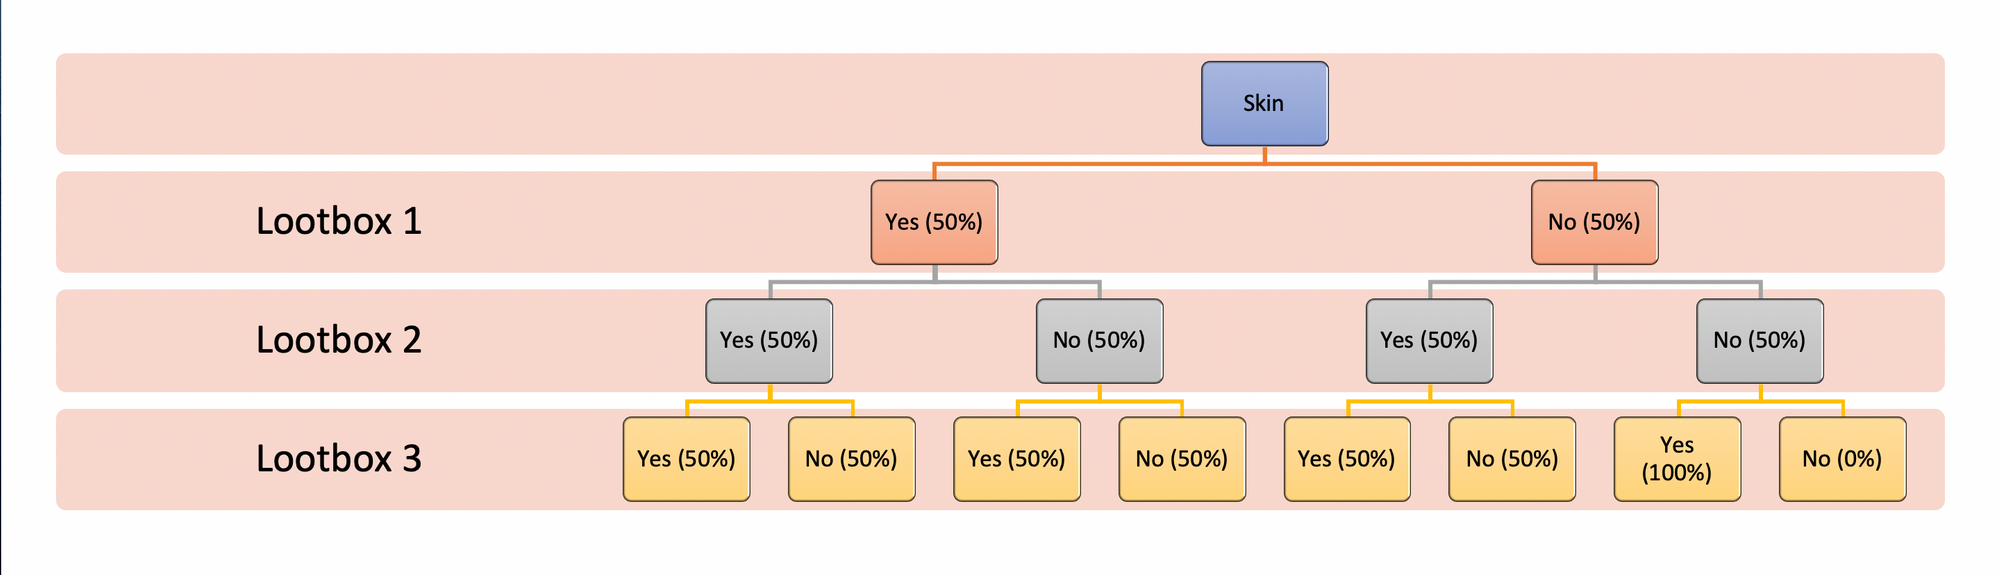 Tree diagram of skin dropchance when opening 3 lootboxes in League of Legends